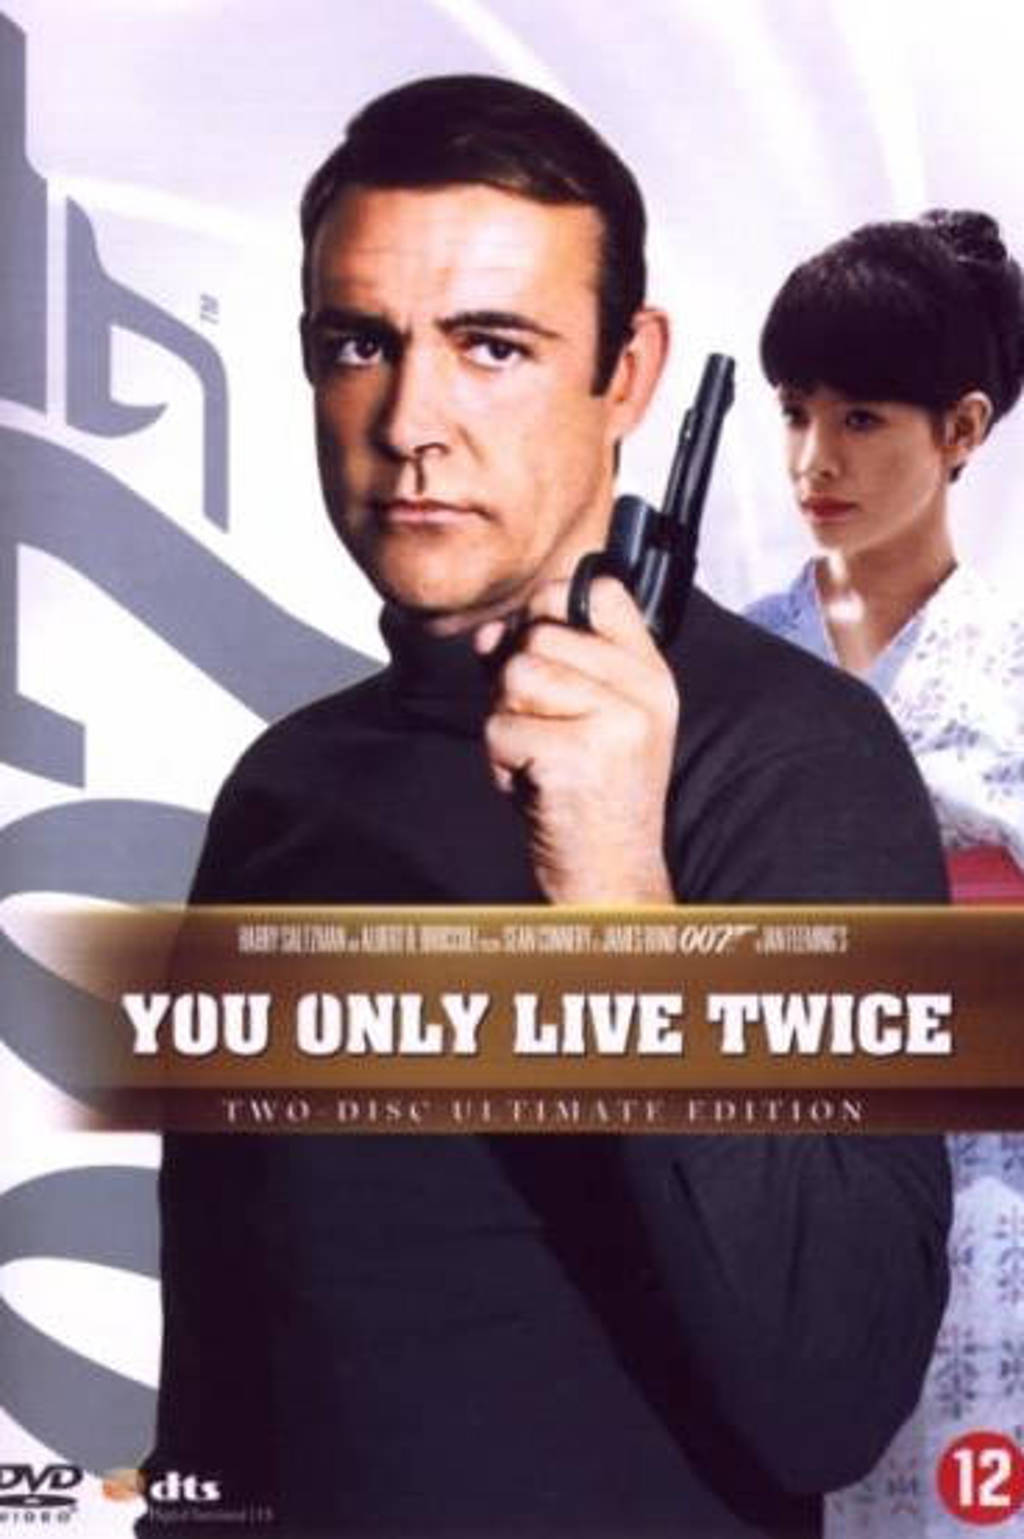 You only live twice (DVD)